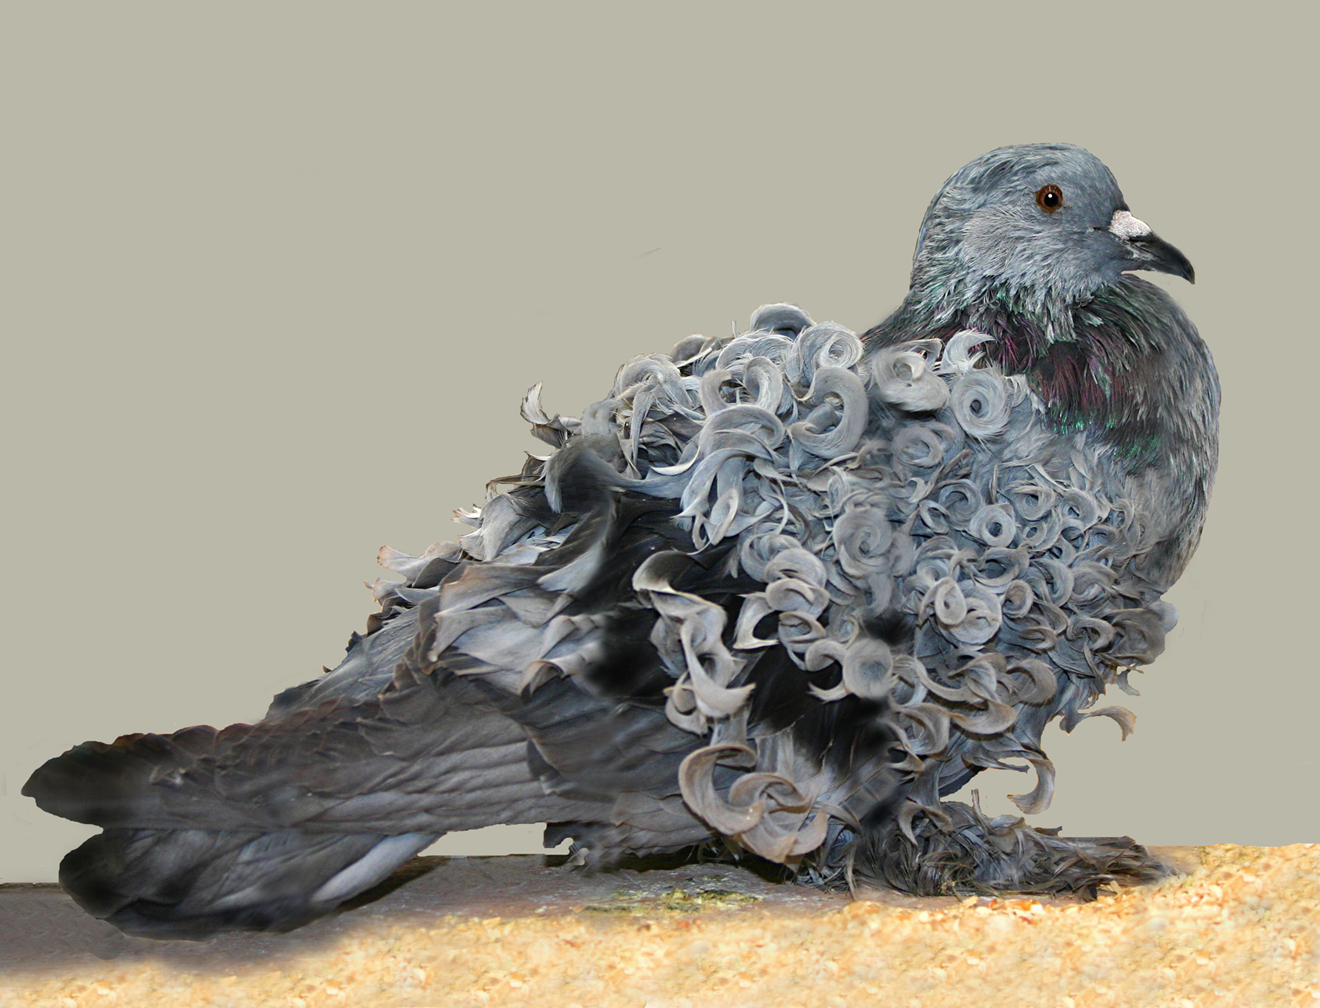 https://images.wikia.com/pigeons/images/b/b4/Frillback_pigeon.jpg